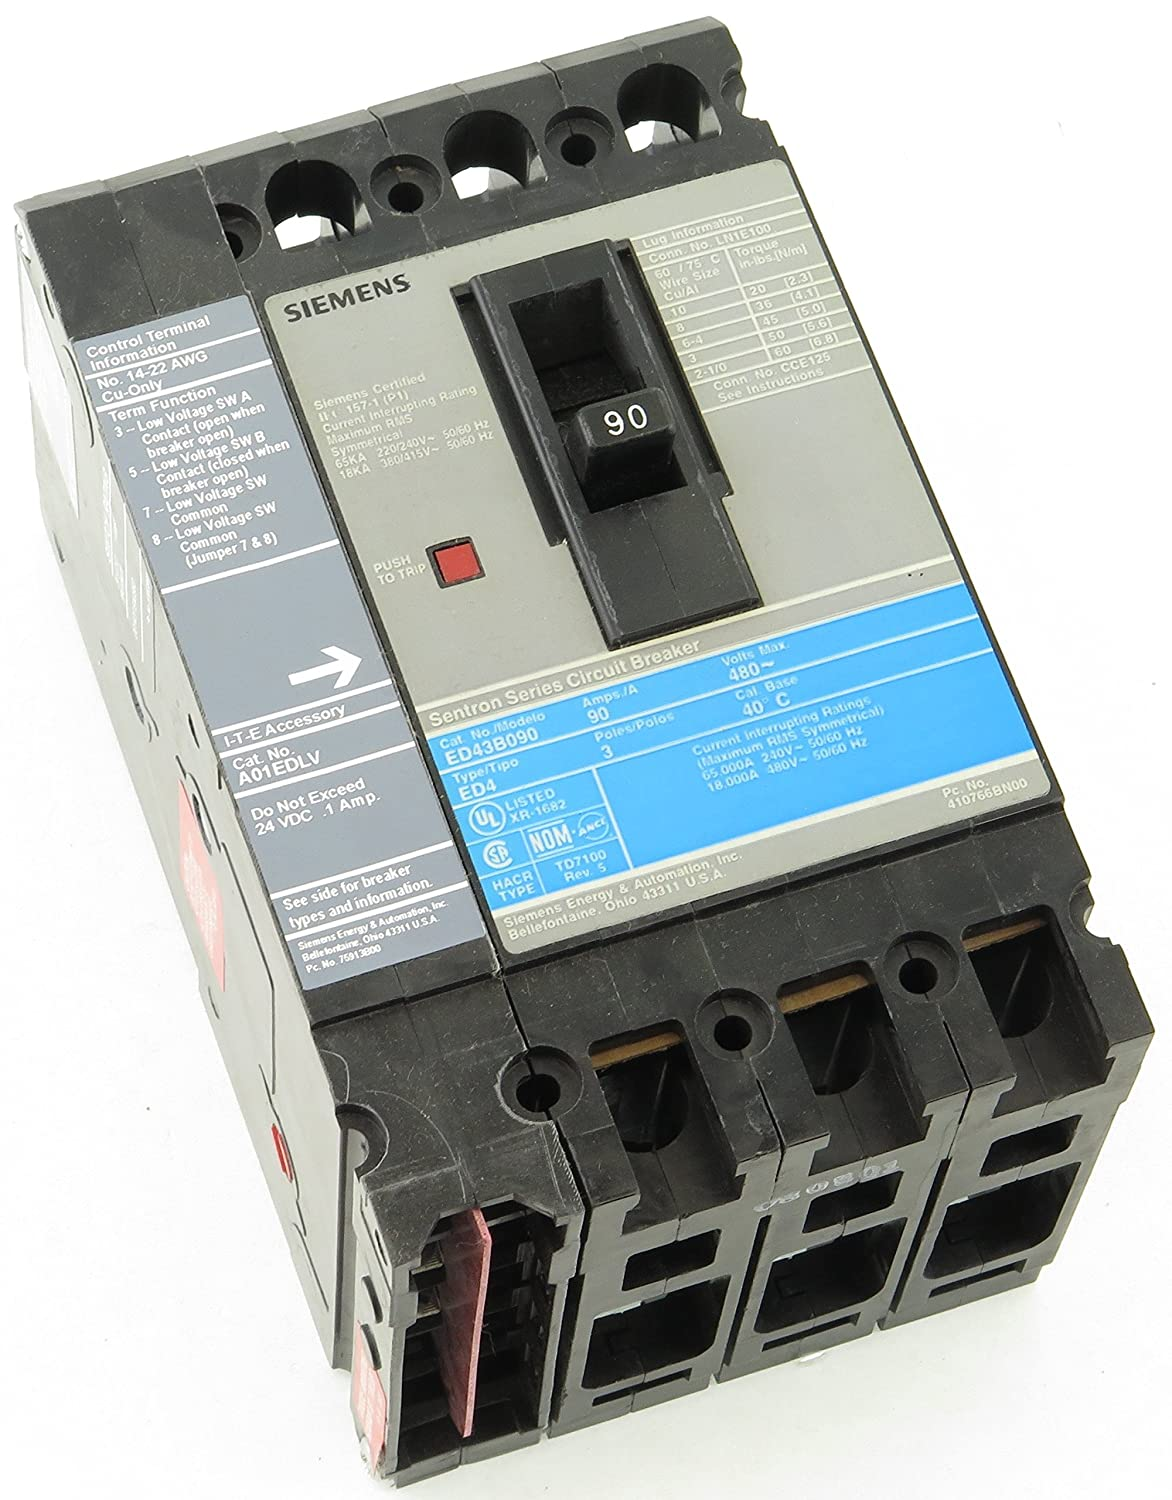 ED43B090LAC Siemens Molded Case Circuit Breaker 3 Pole 90 Amp 480VAC ...